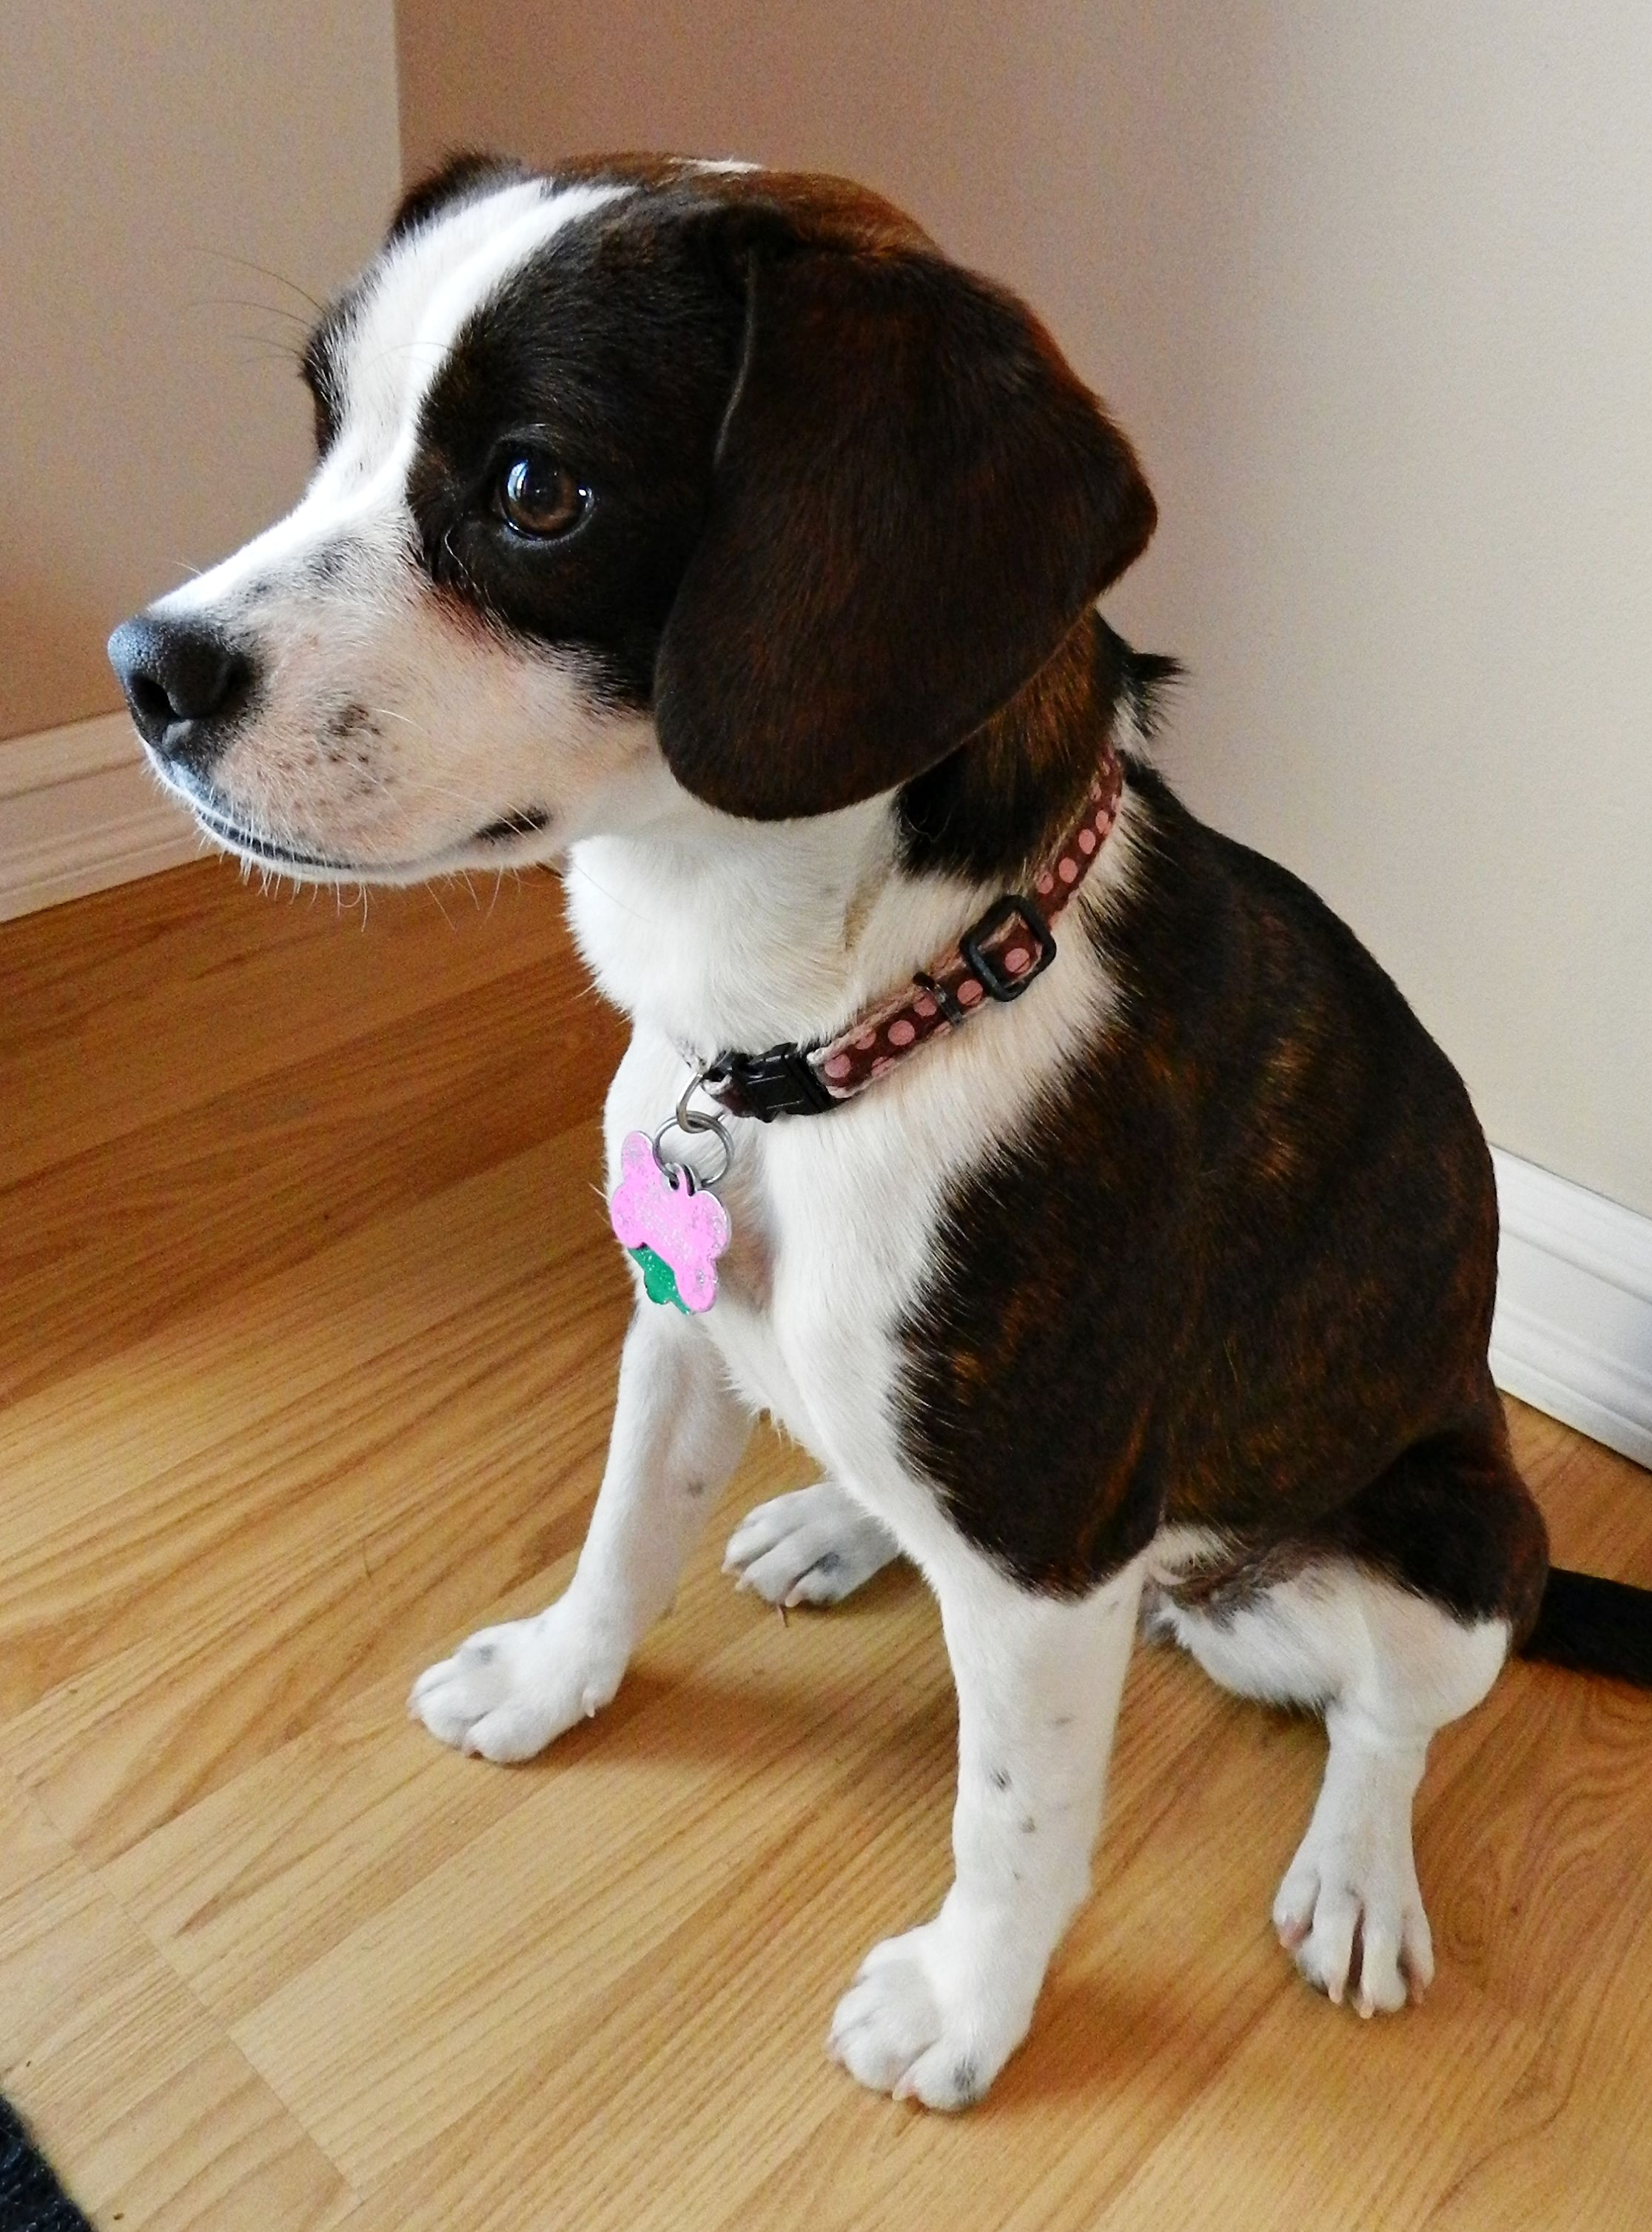 So Pretty Boston Terrier Beagle Boglen Terrier Love Her